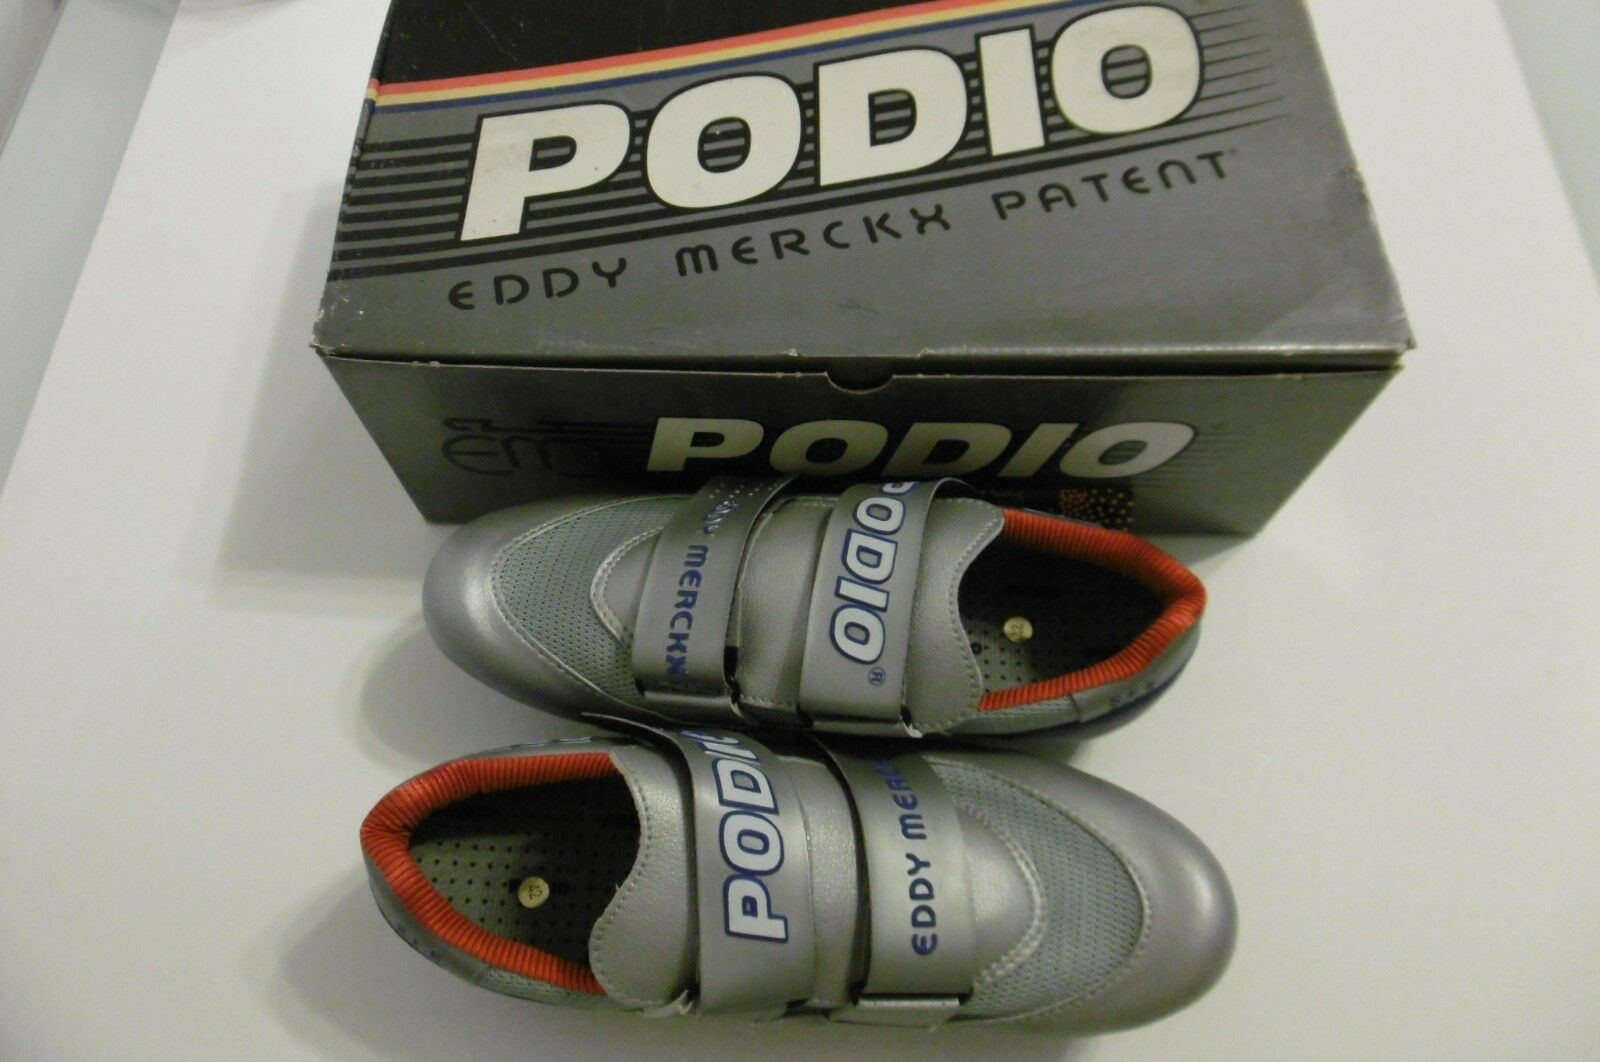 Eddy Merckx Patent Podio S.F.S.2000 Shoes Size 42 With Shoe Cleats New In Box